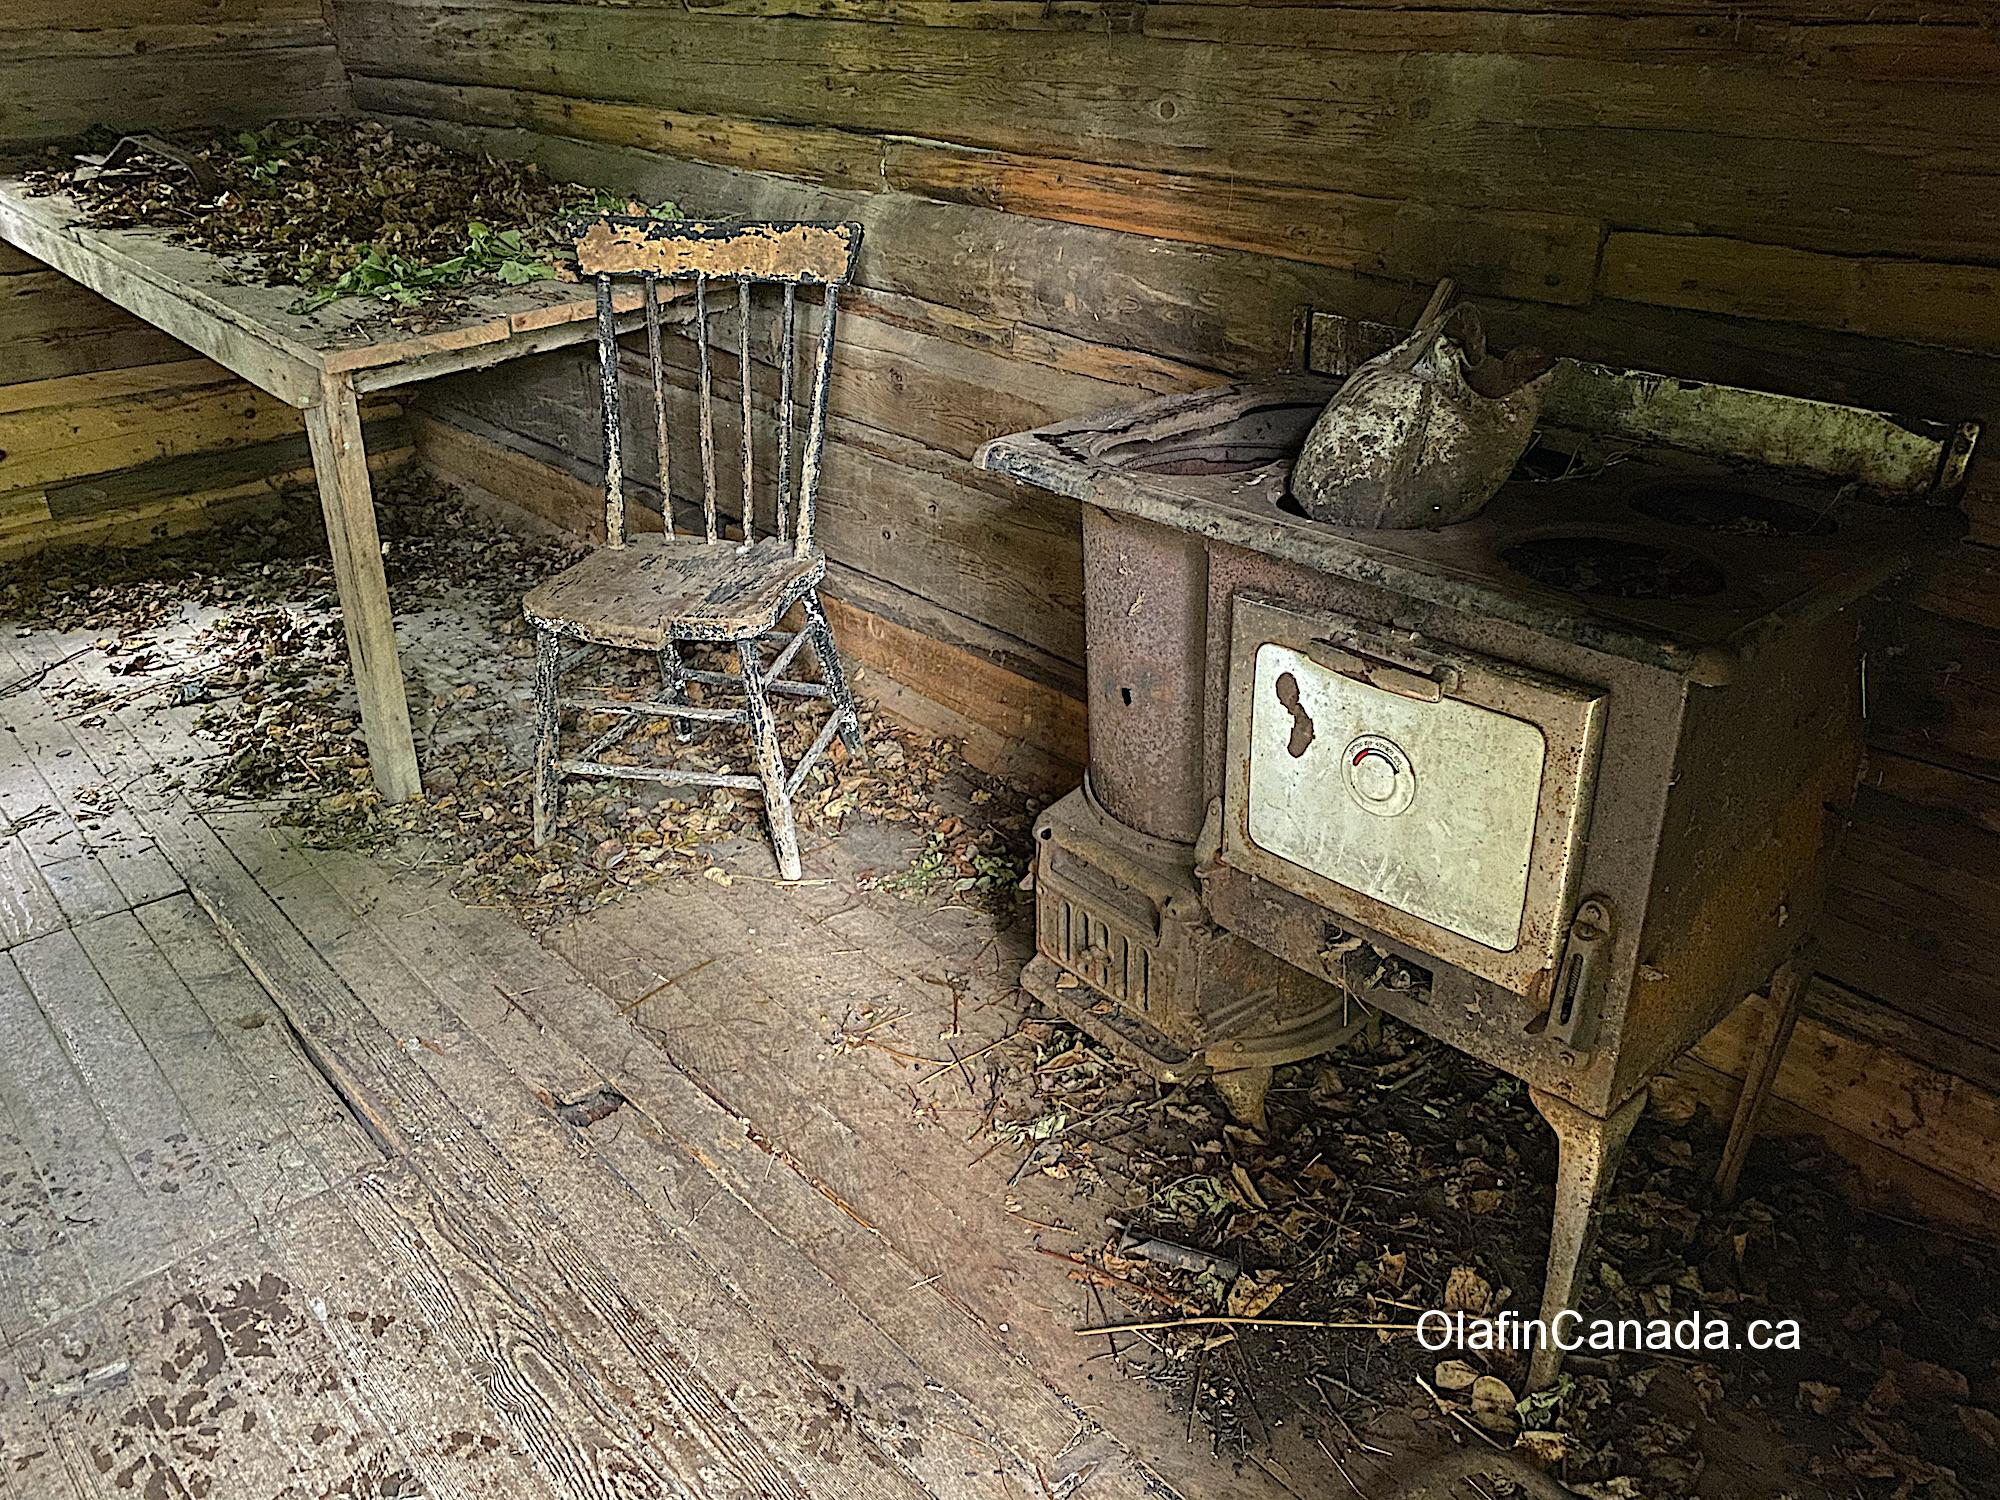 Stove and chair found in a cabin at Quesnel Forks #olafincanada #britishcolumbia #discoverbc #abandonedbc #cariboo #quesnelforks